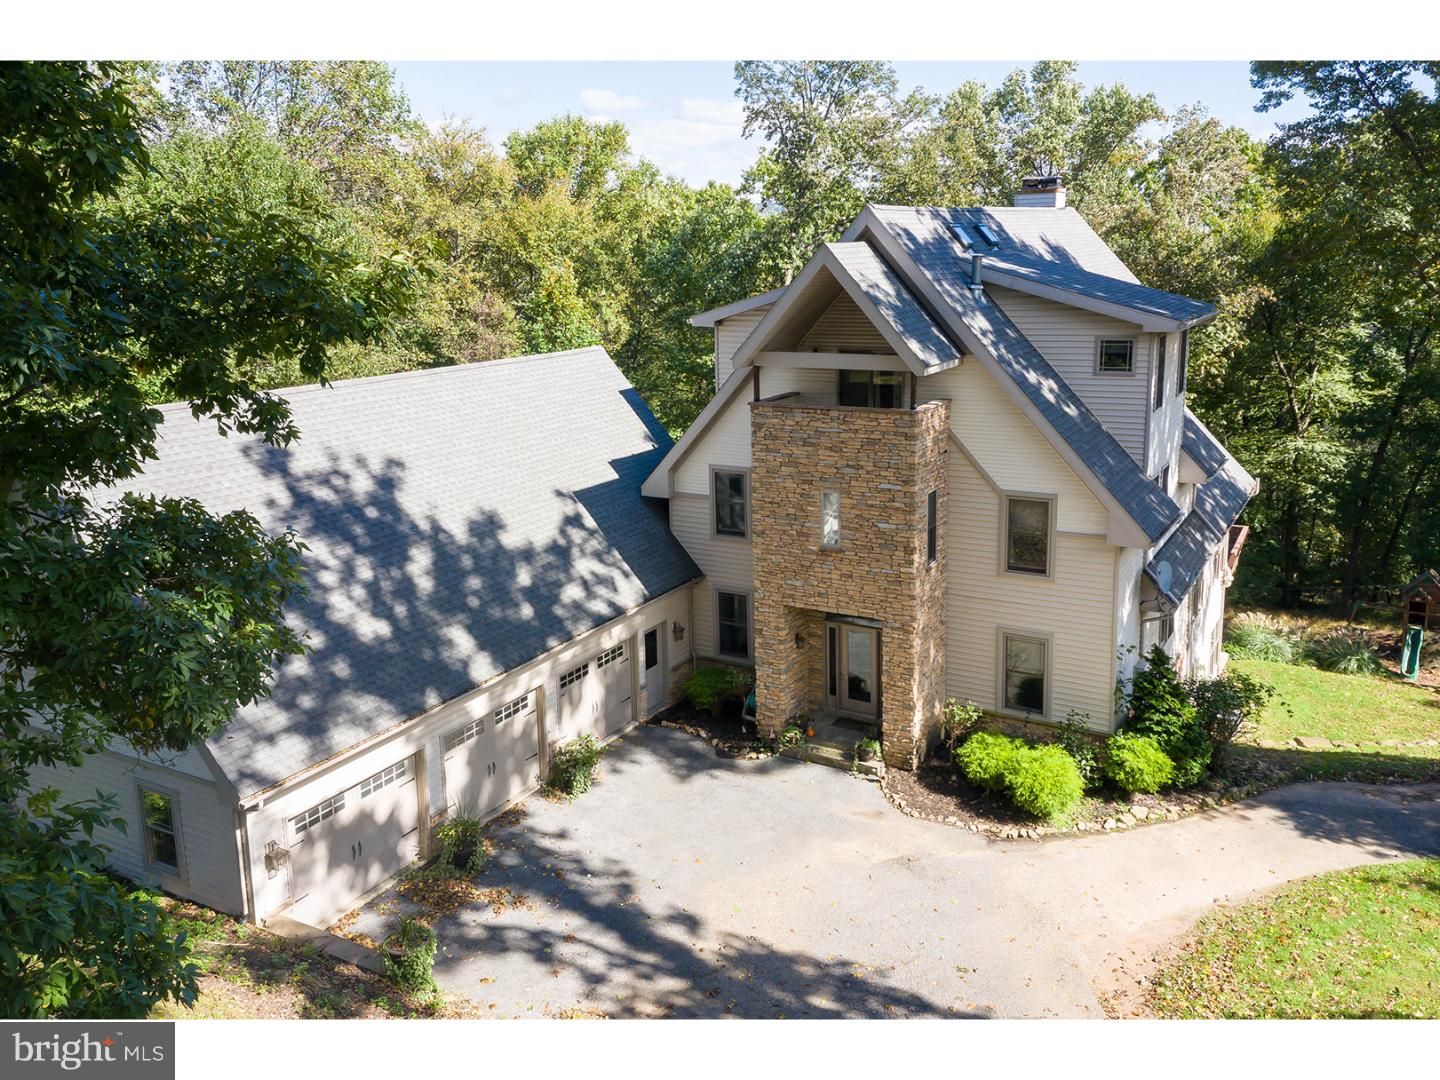 2153 QUEENS COURT, READING, PA 19606